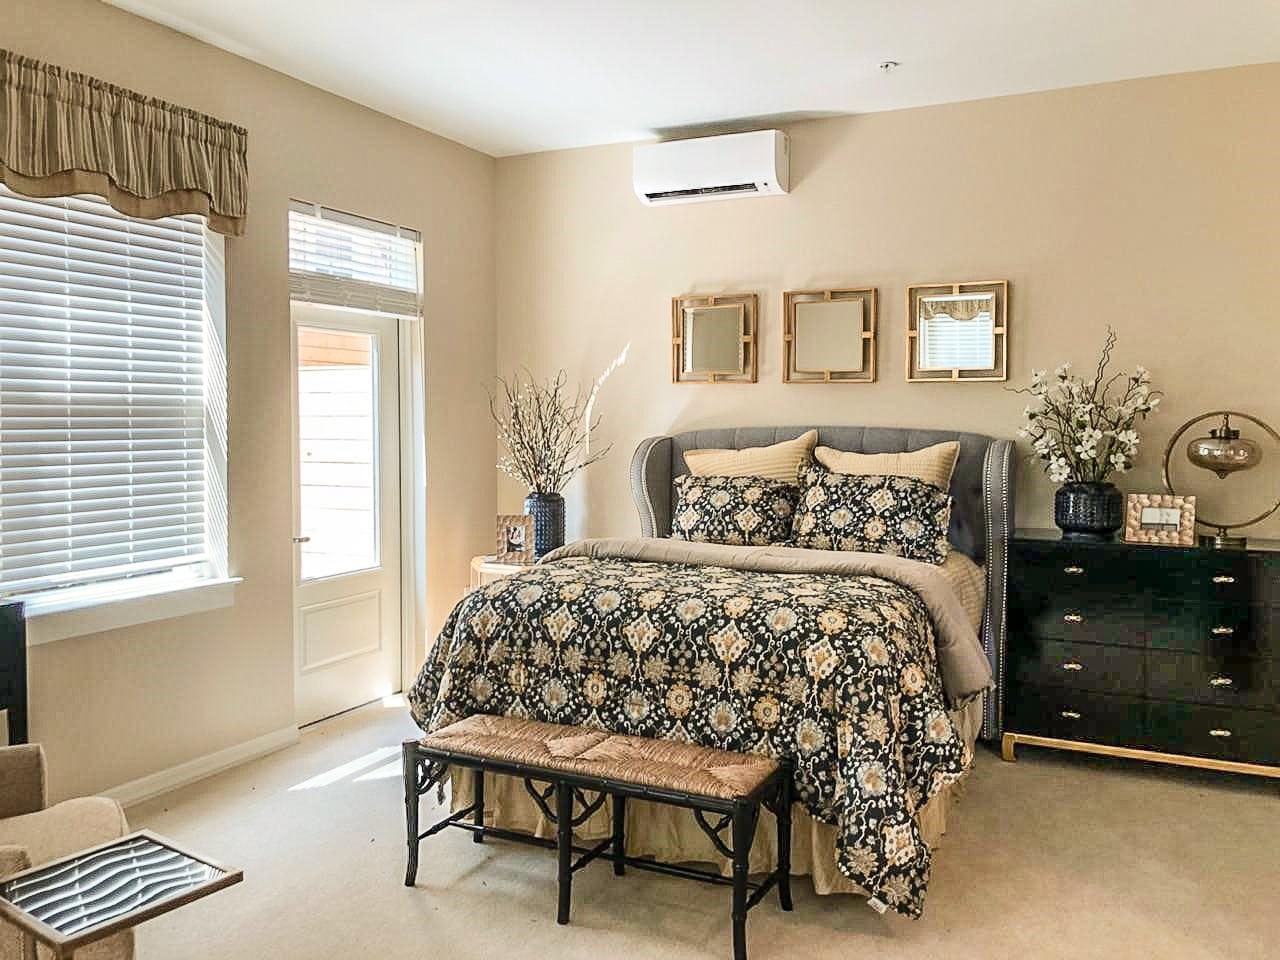 Washington DC Senior Living facility model bedroom